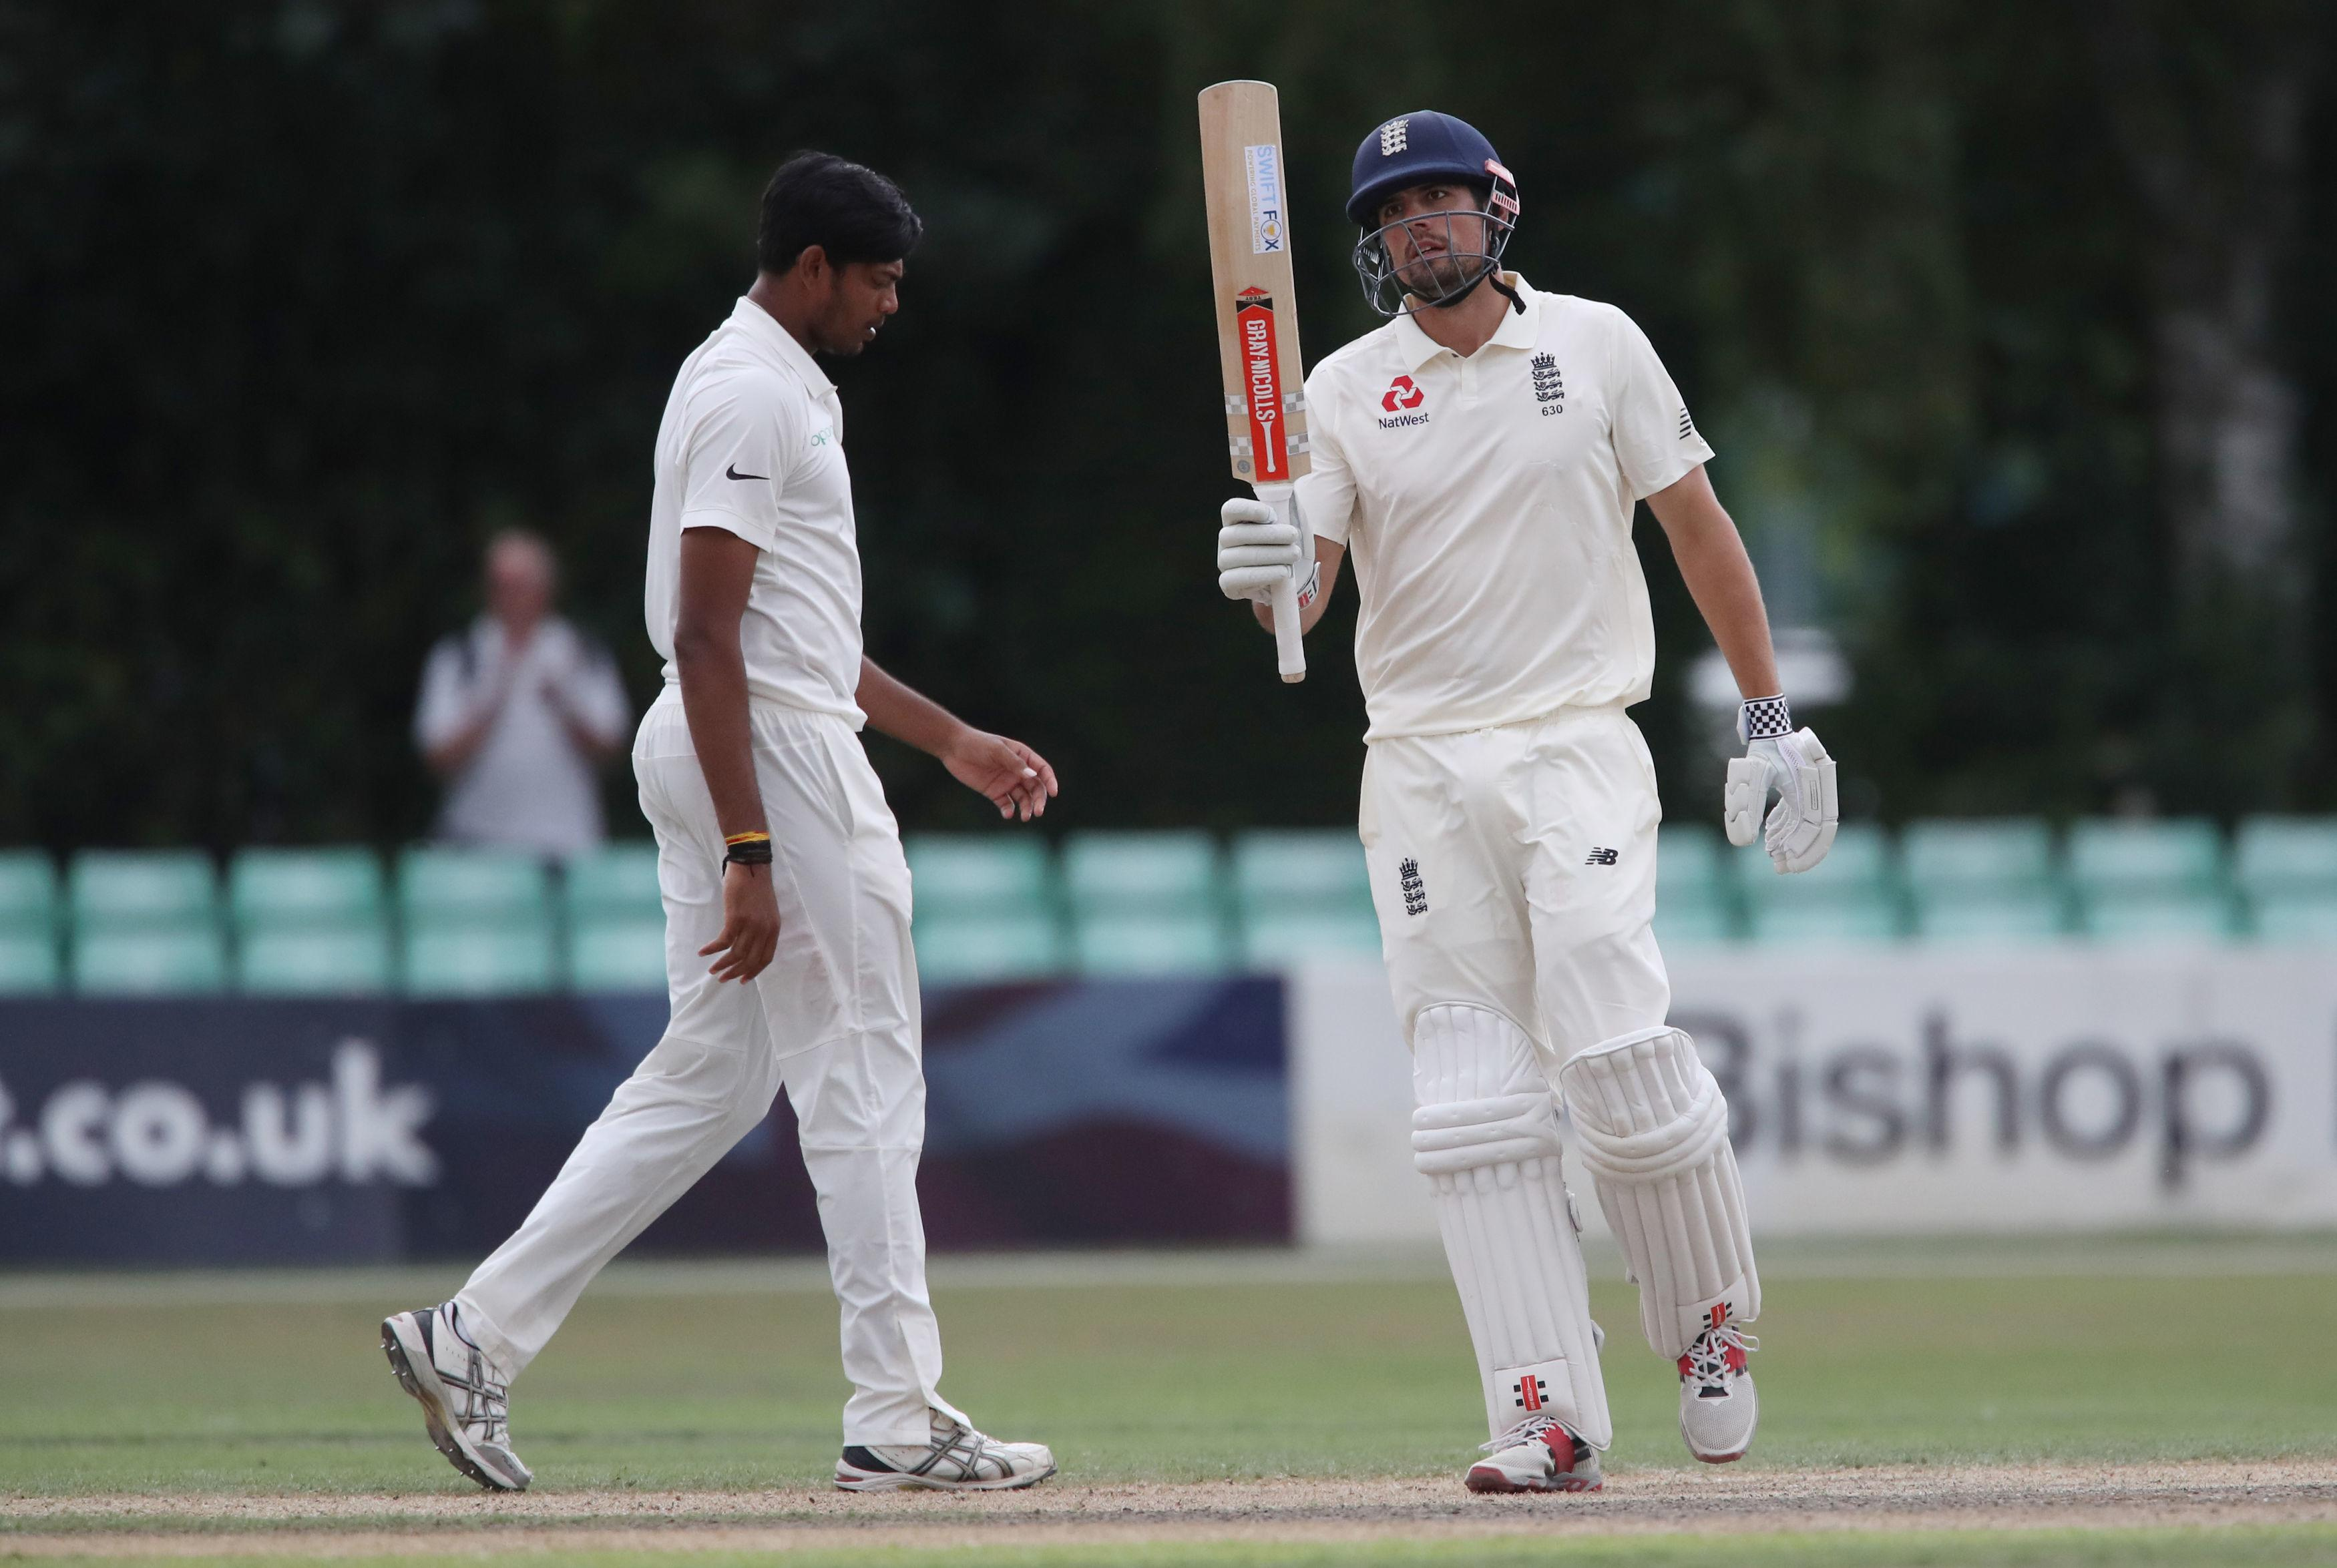 Alastair Cook warmed up for the First Test with India with a century for the Lions